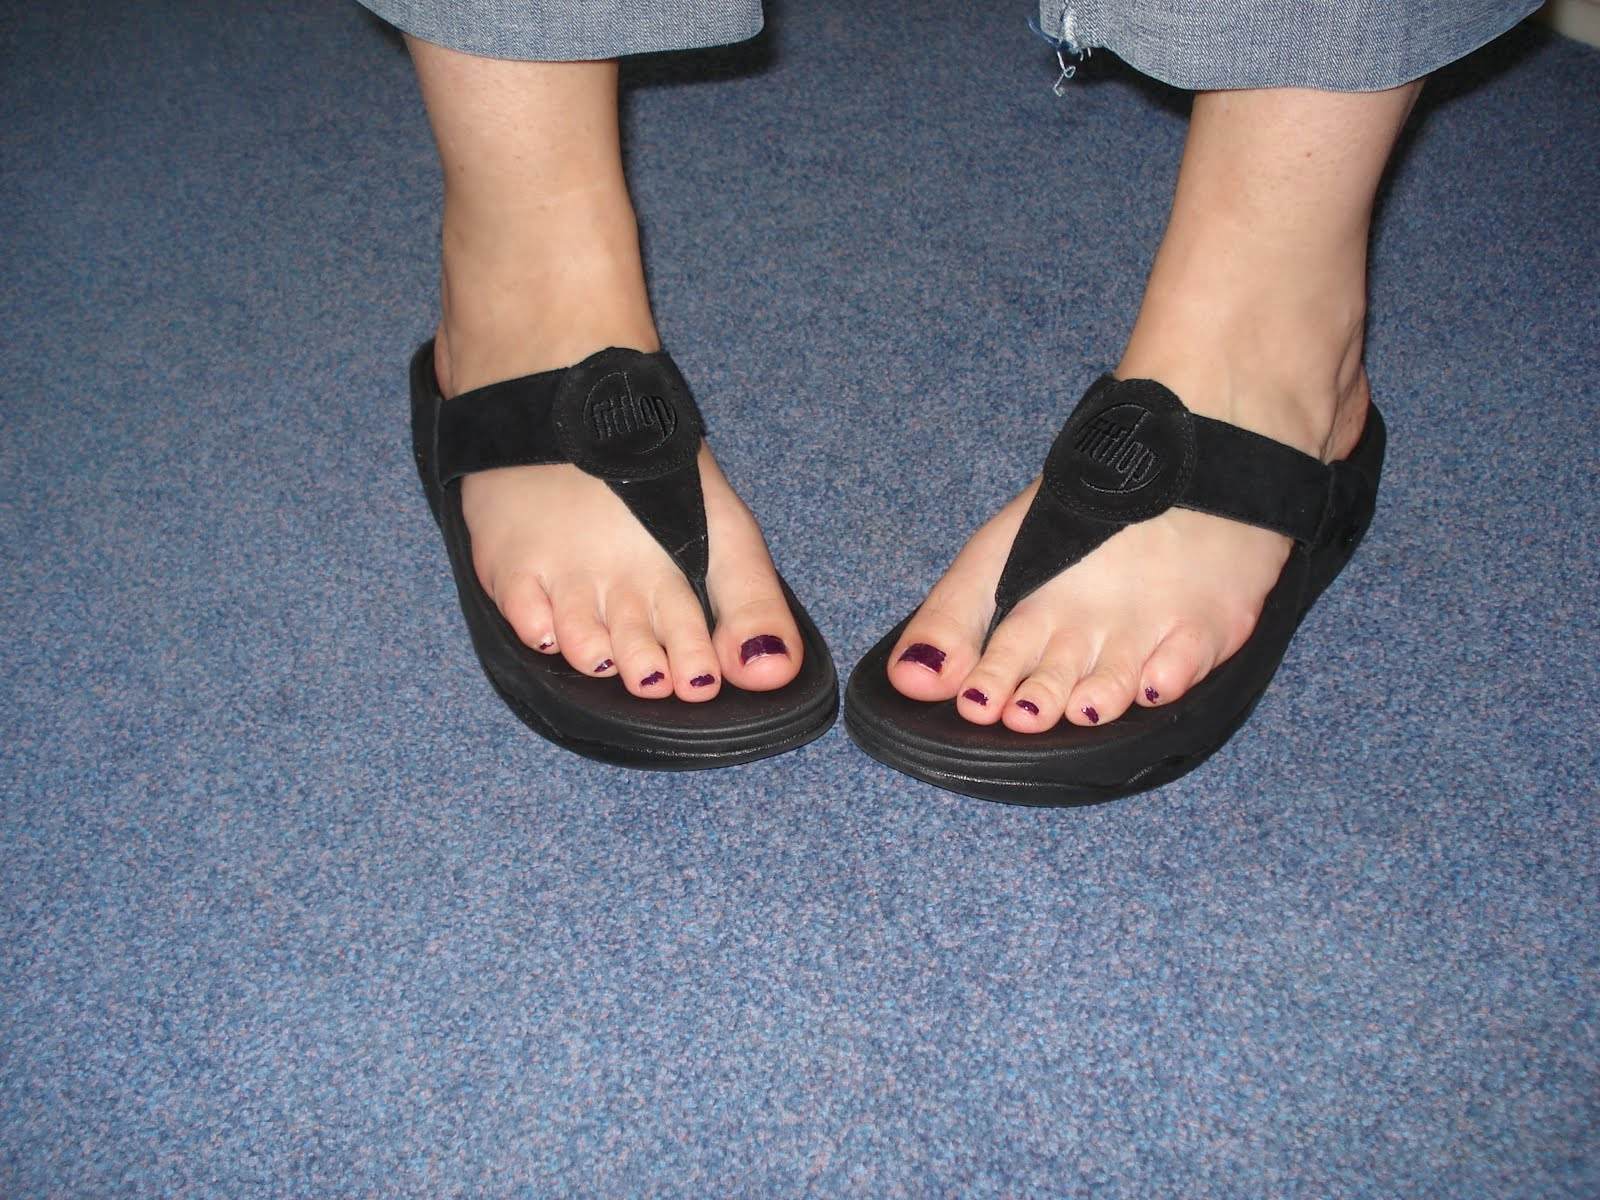 cf75bbc7574 Enough on our plates fit flop fan JPG 1600x1200 Fitflop foot